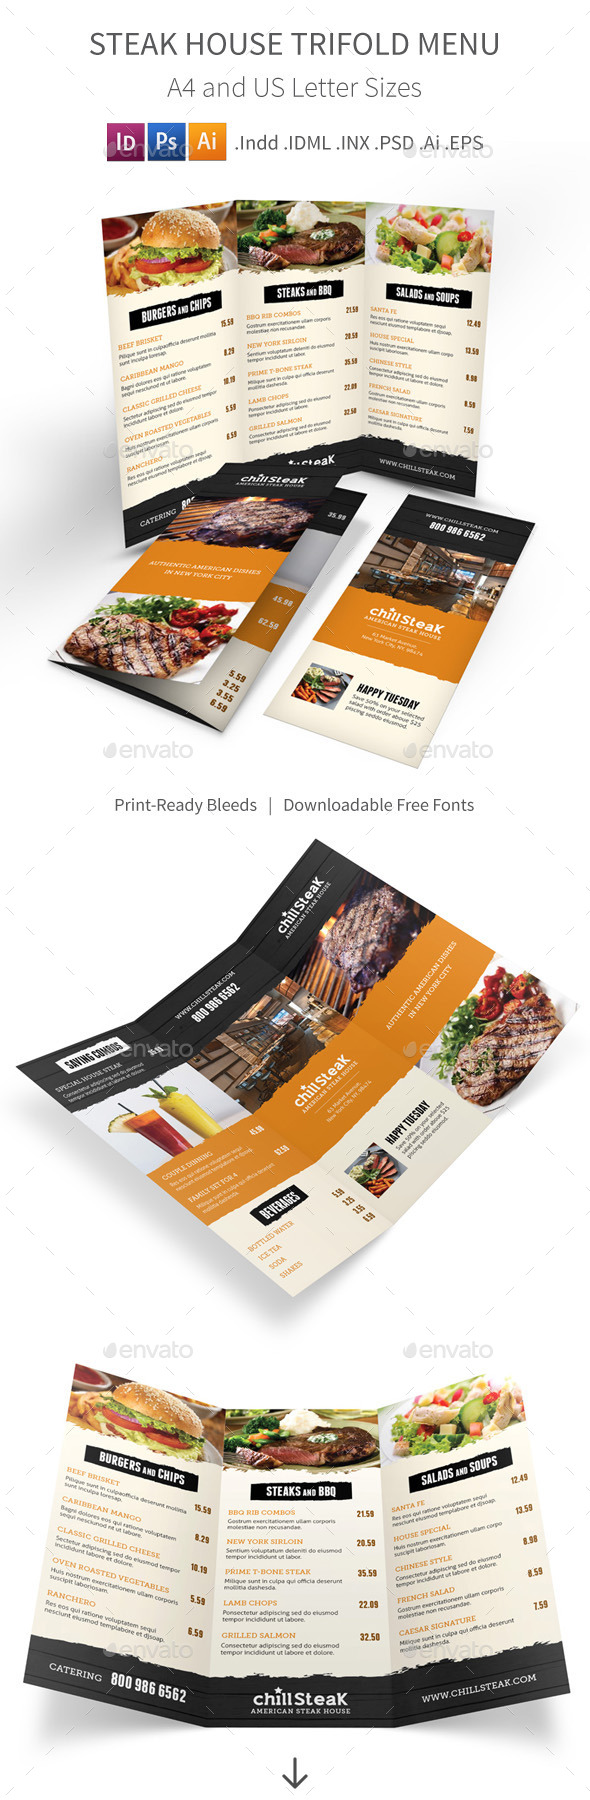 GraphicRiver Steak House Trifold Menu 11162336